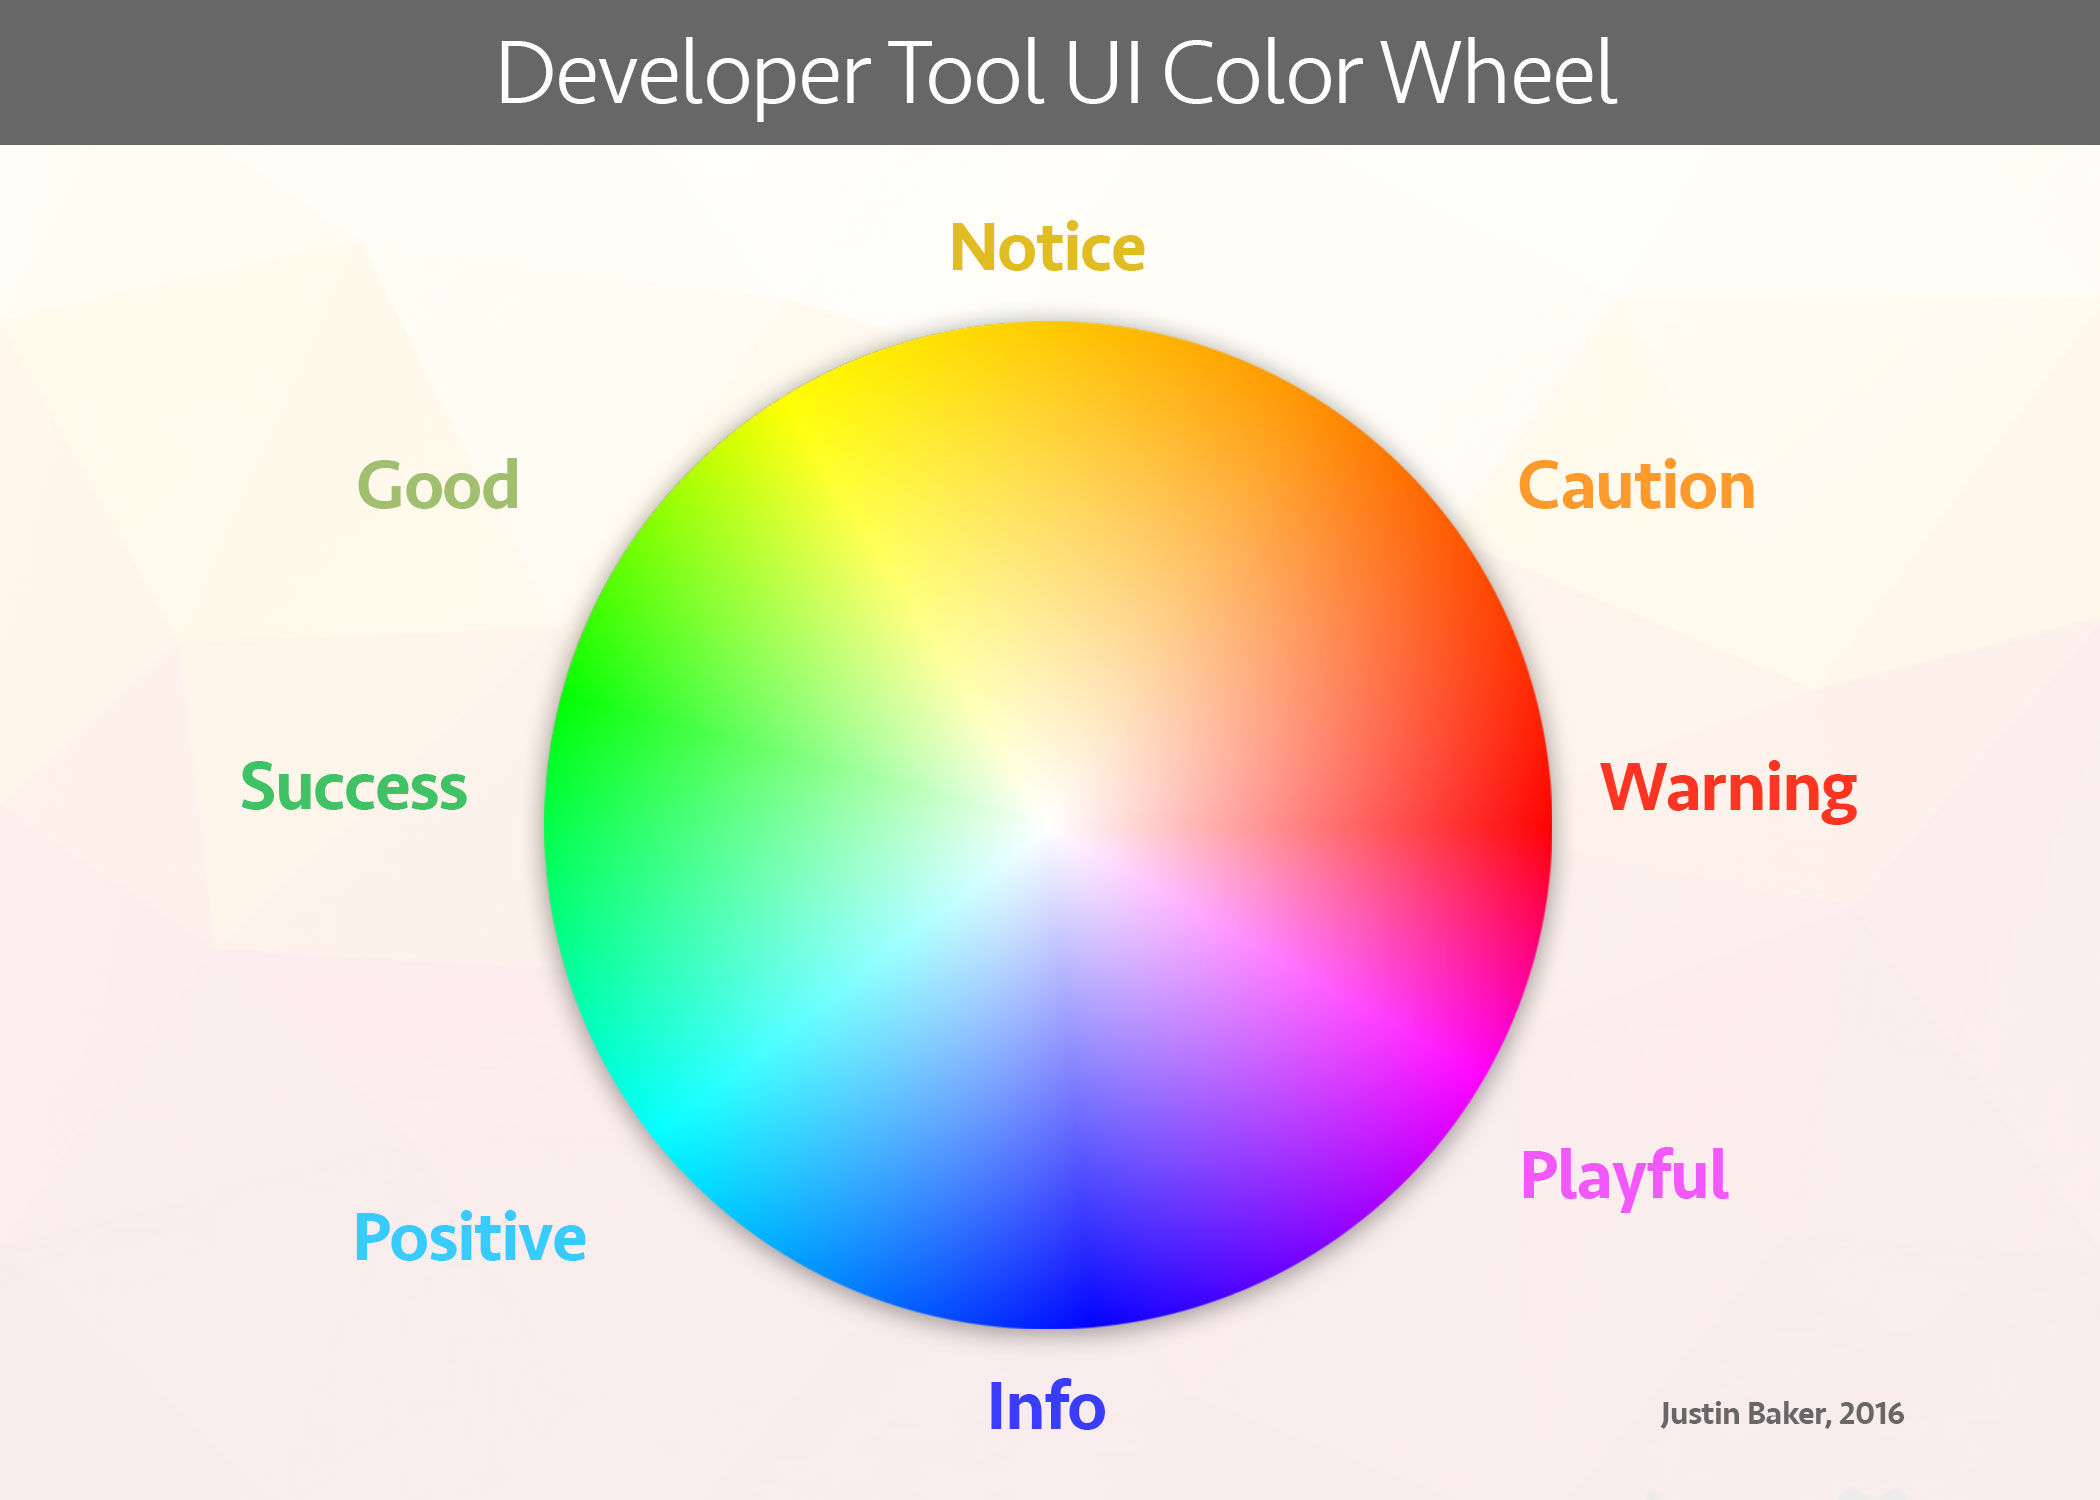 Deveoper Tool UI Color Wheel